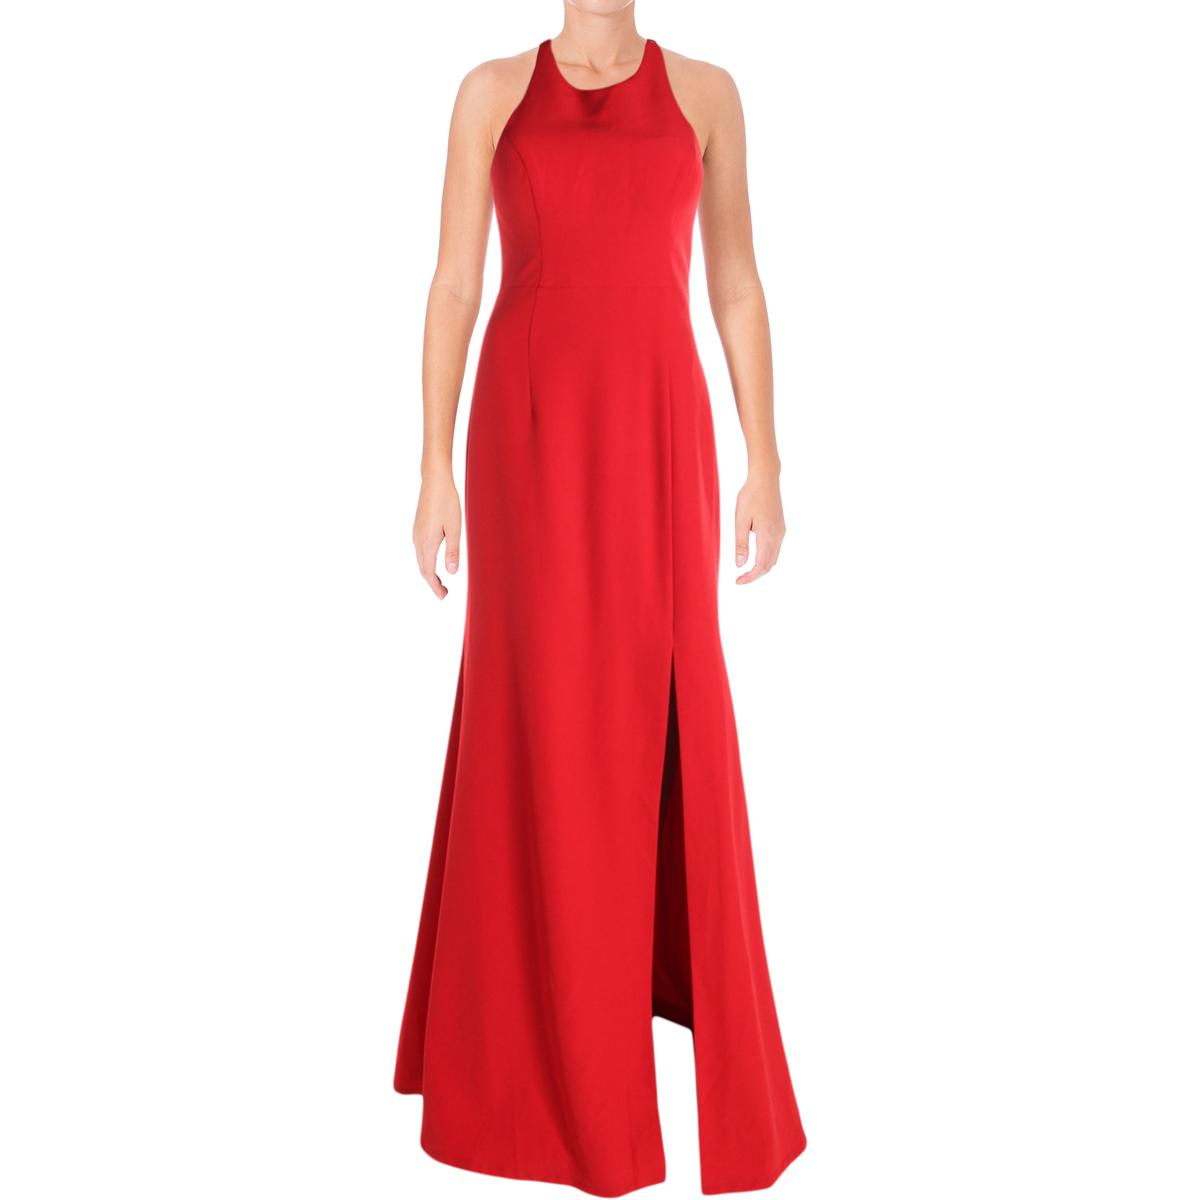 0e260bf30bb Details about Bariano Womens Red Halter Special Occasion Evening Dress Gown  M BHFO 3636